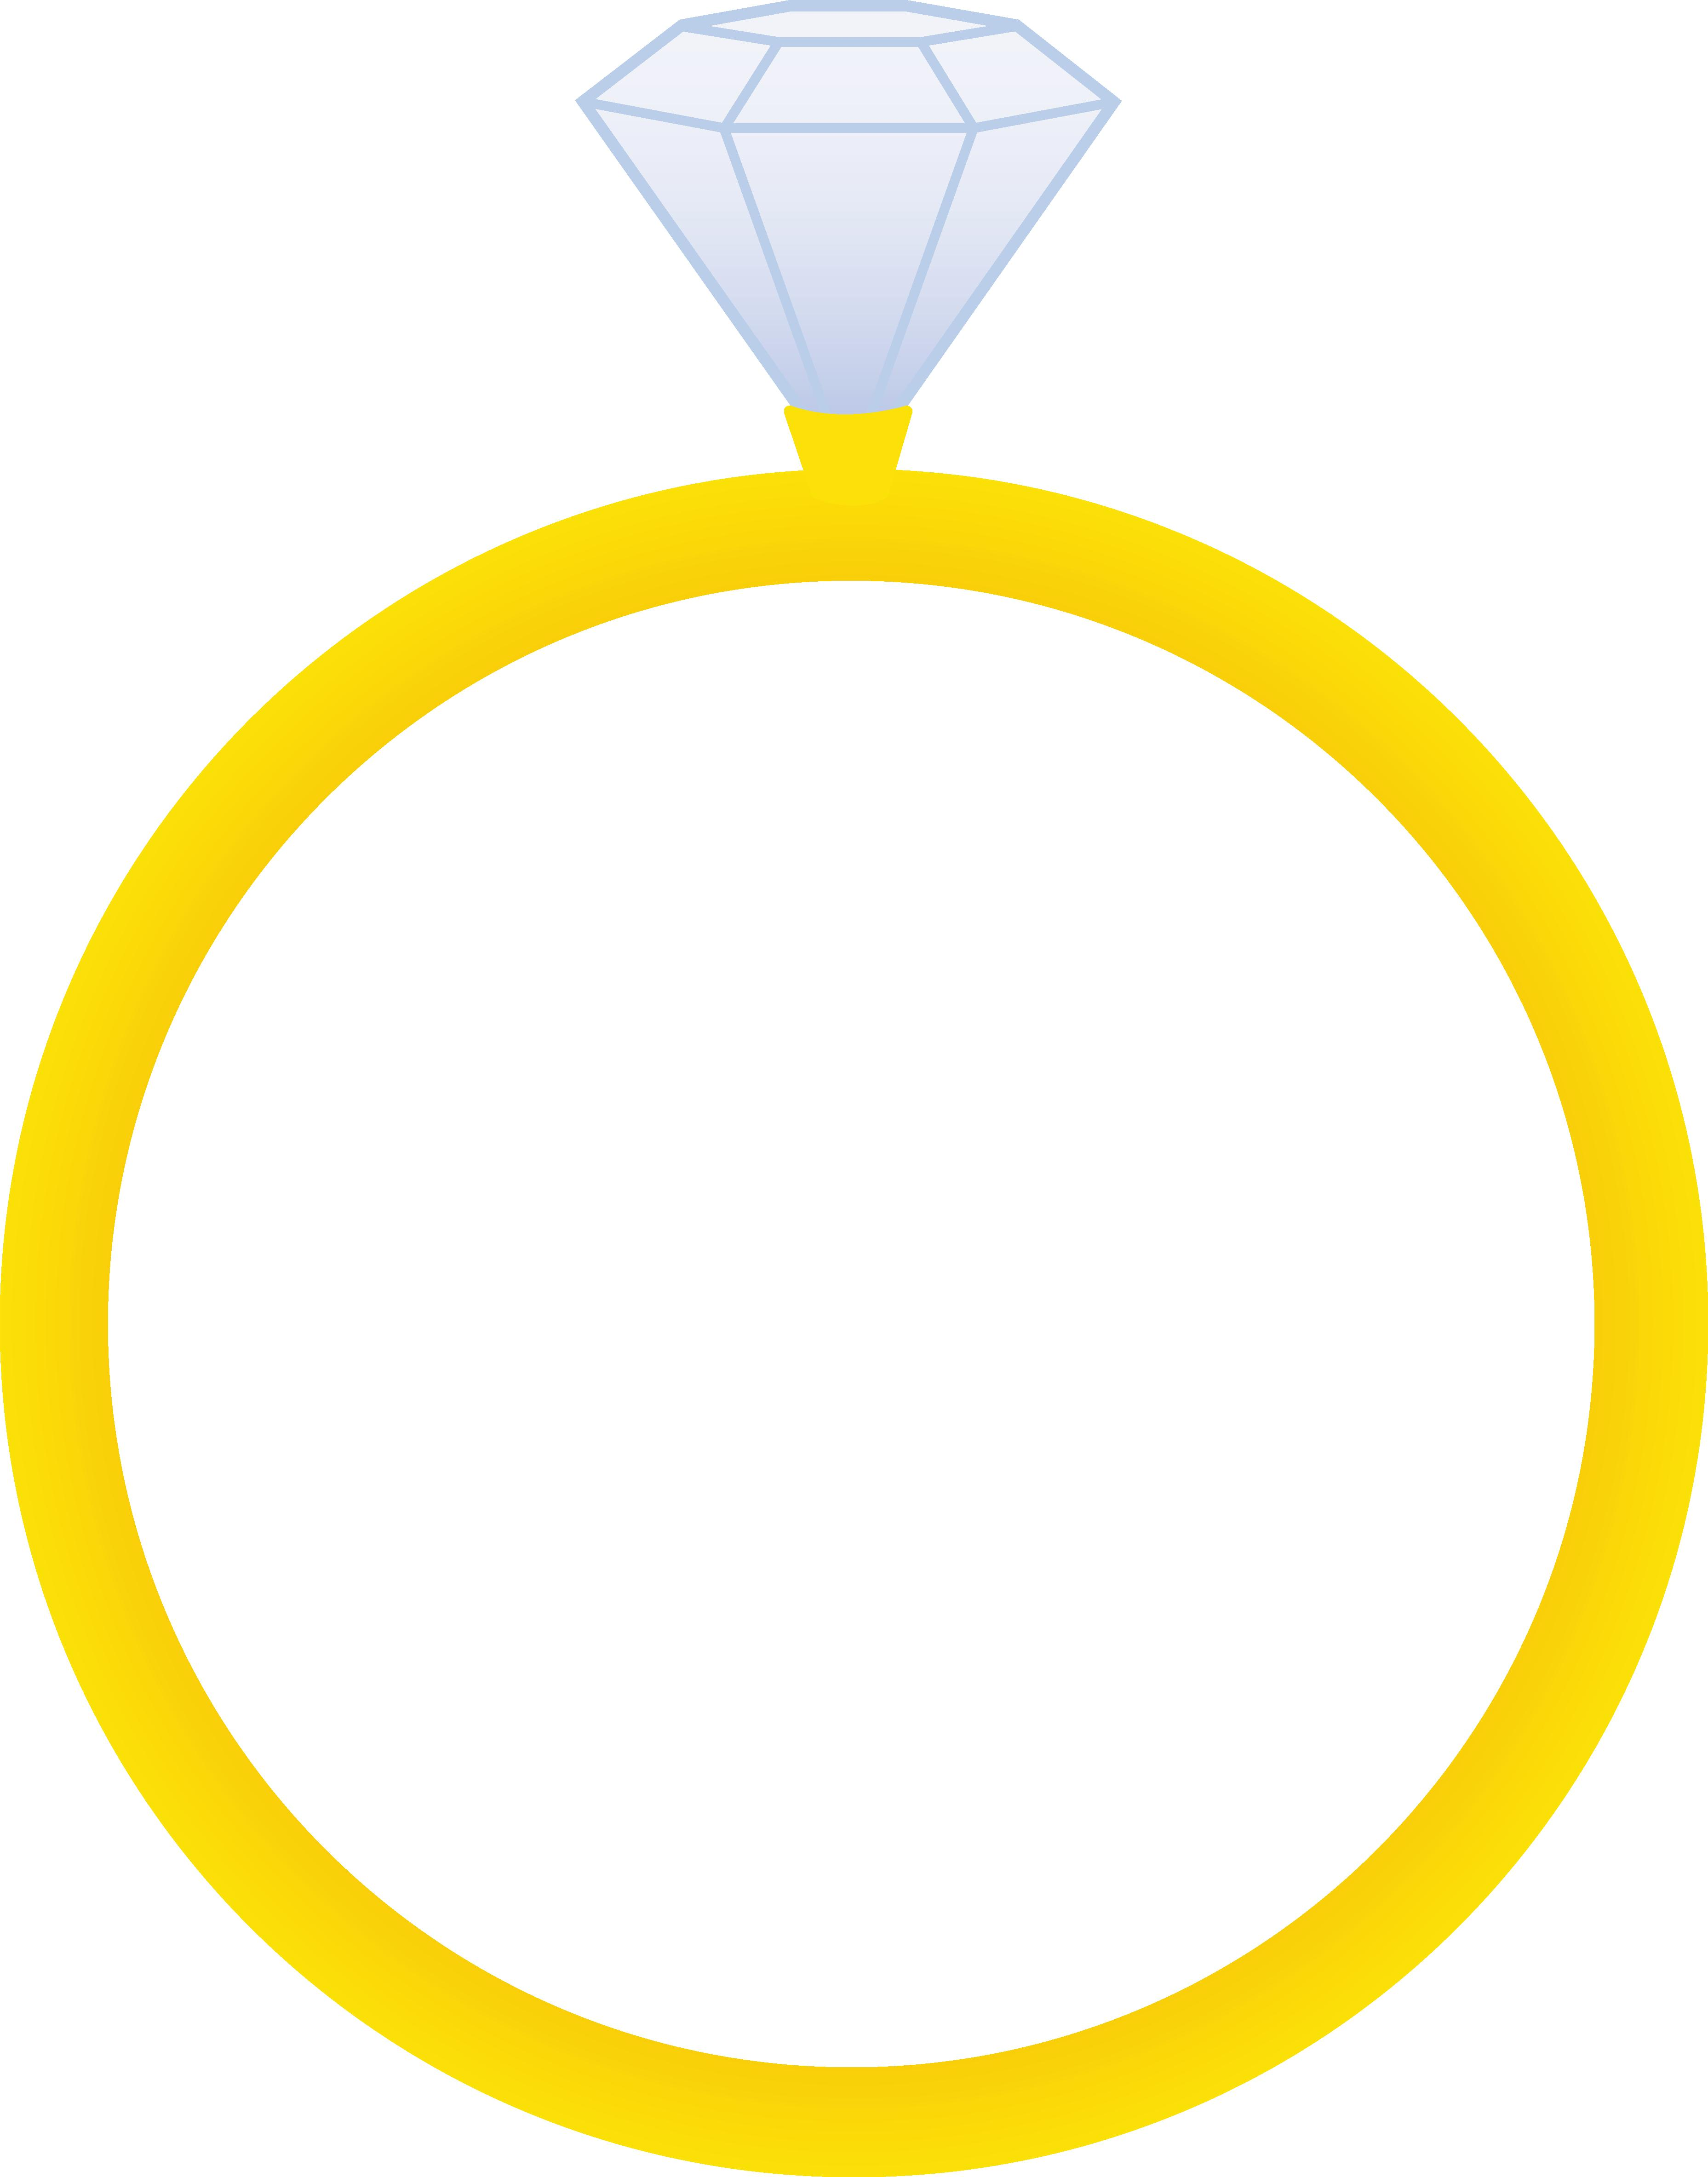 Free Ring Cliparts, Download Free Clip Art, Free Clip Art on.